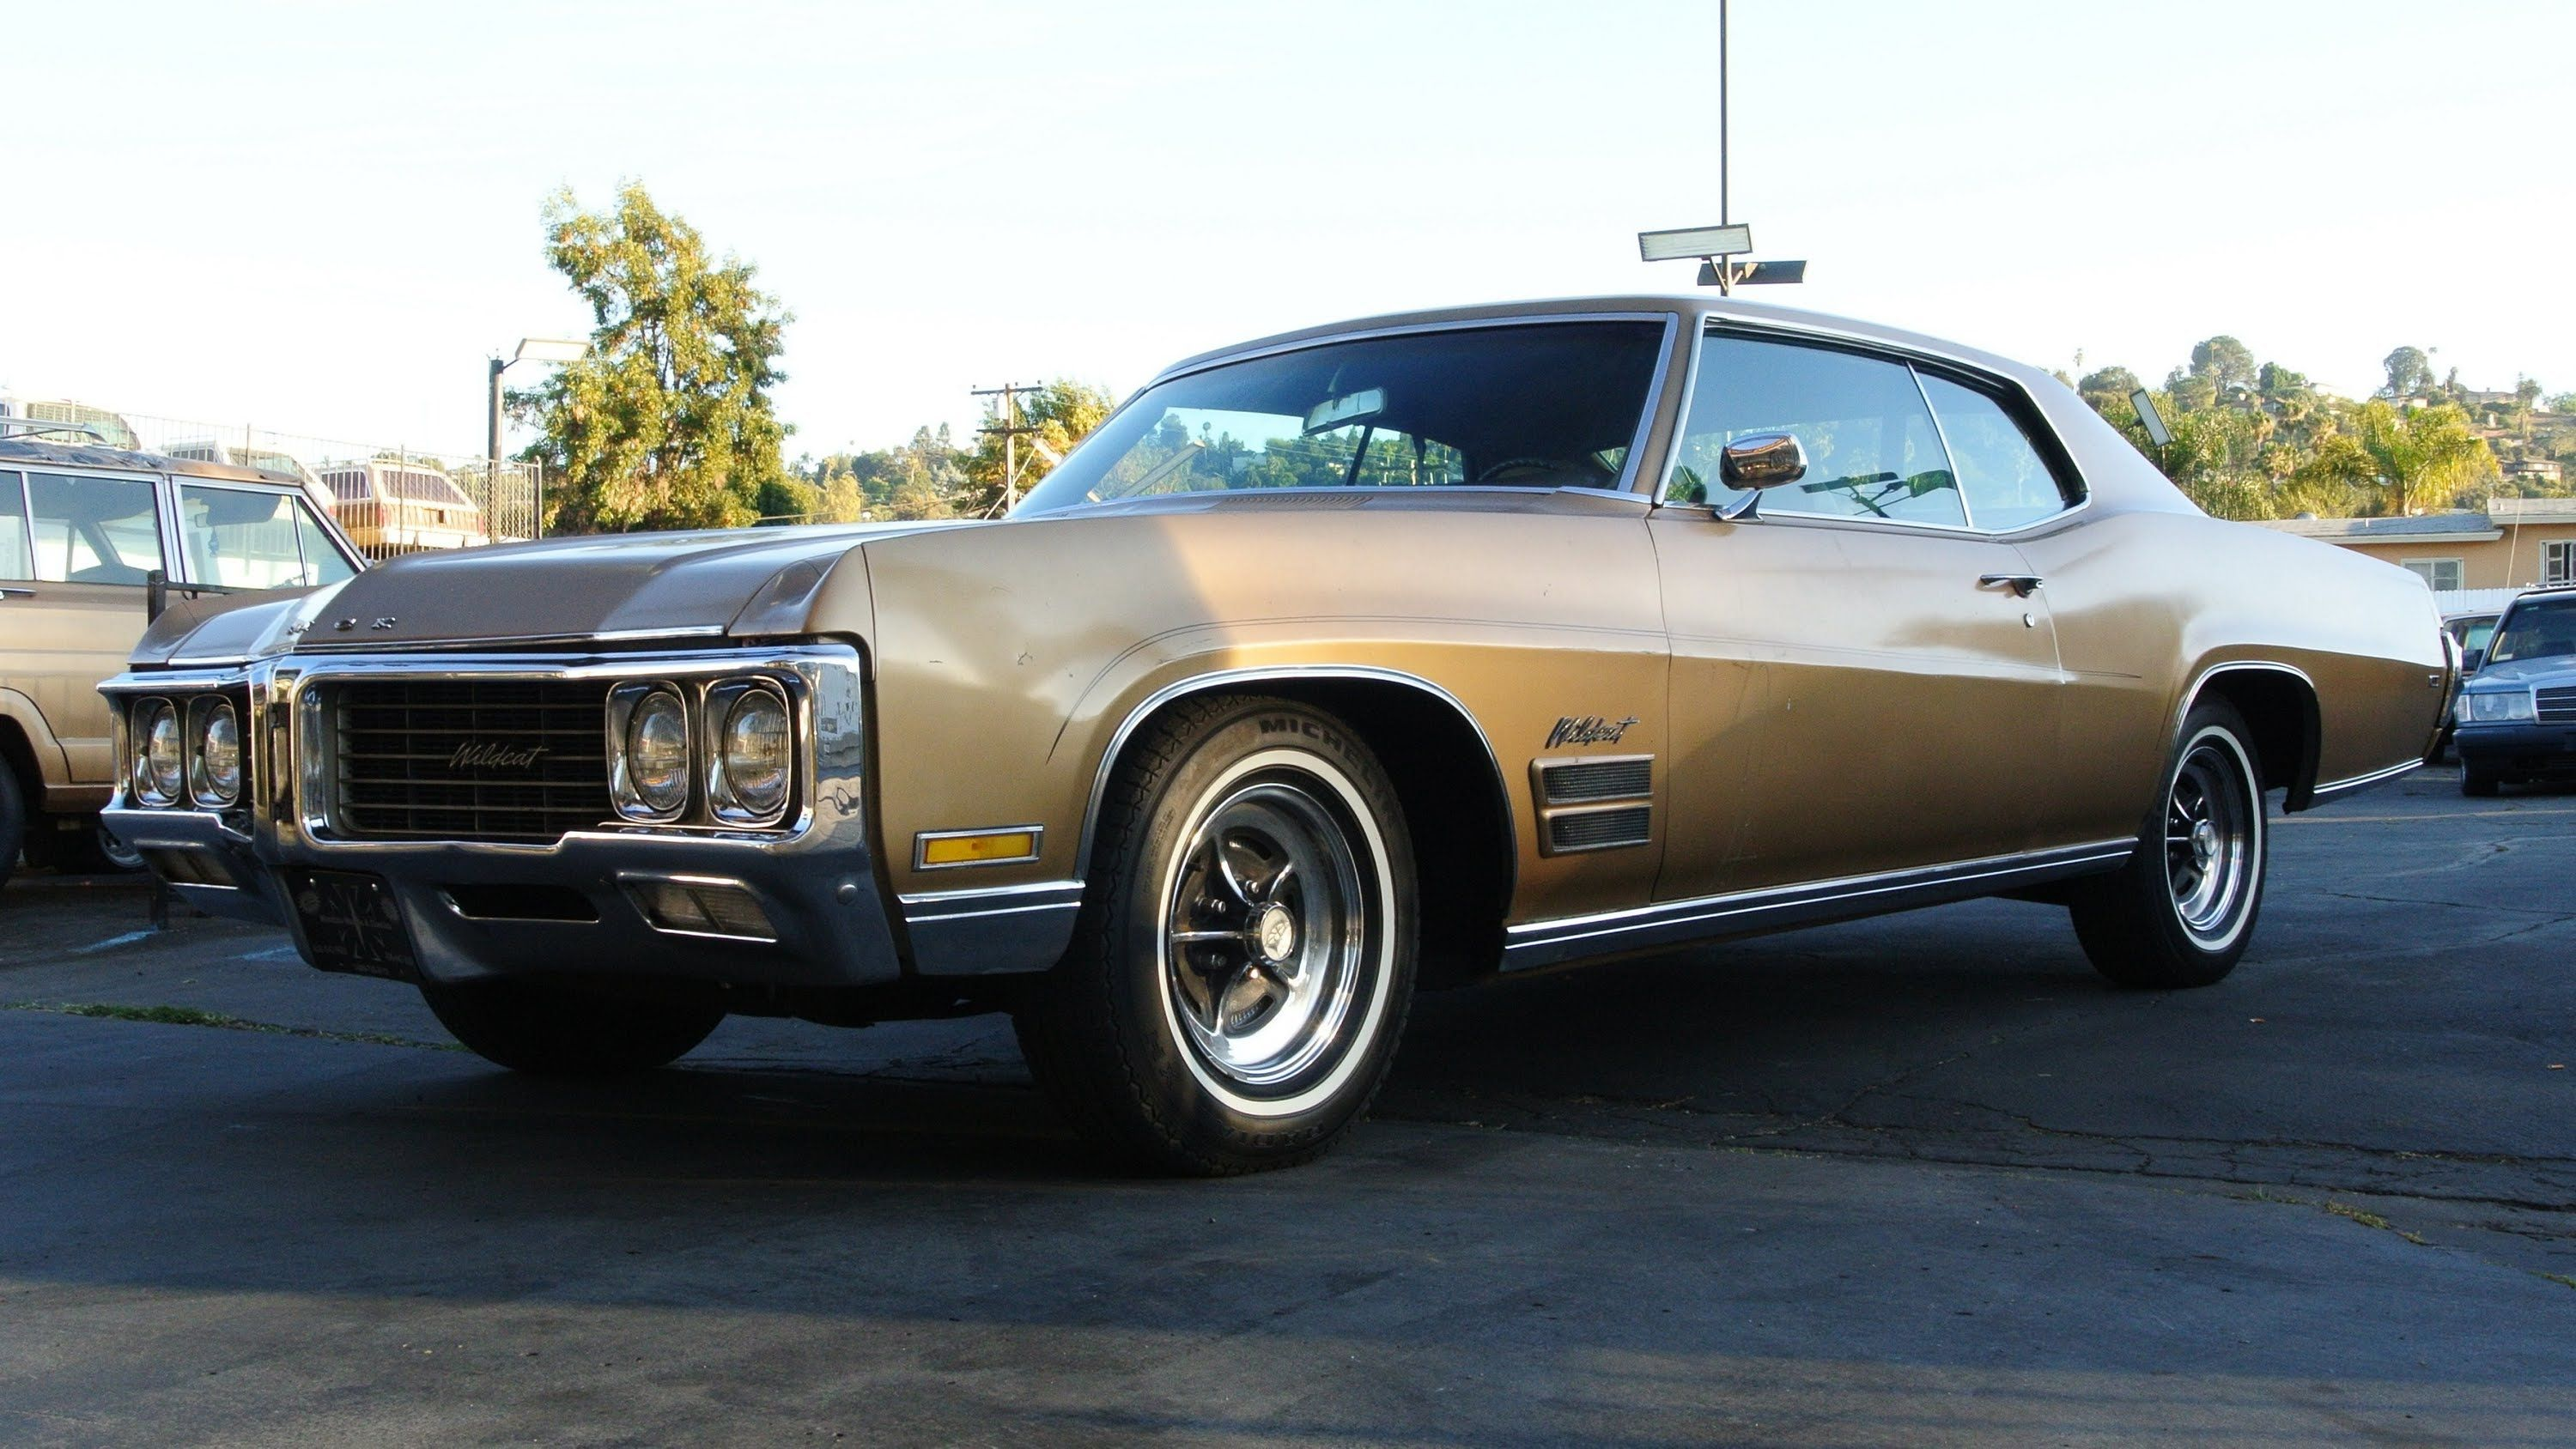 1970 Buick Wildcat 455 V8 Chevy Caprice / Impala Clean 350 Killer ...